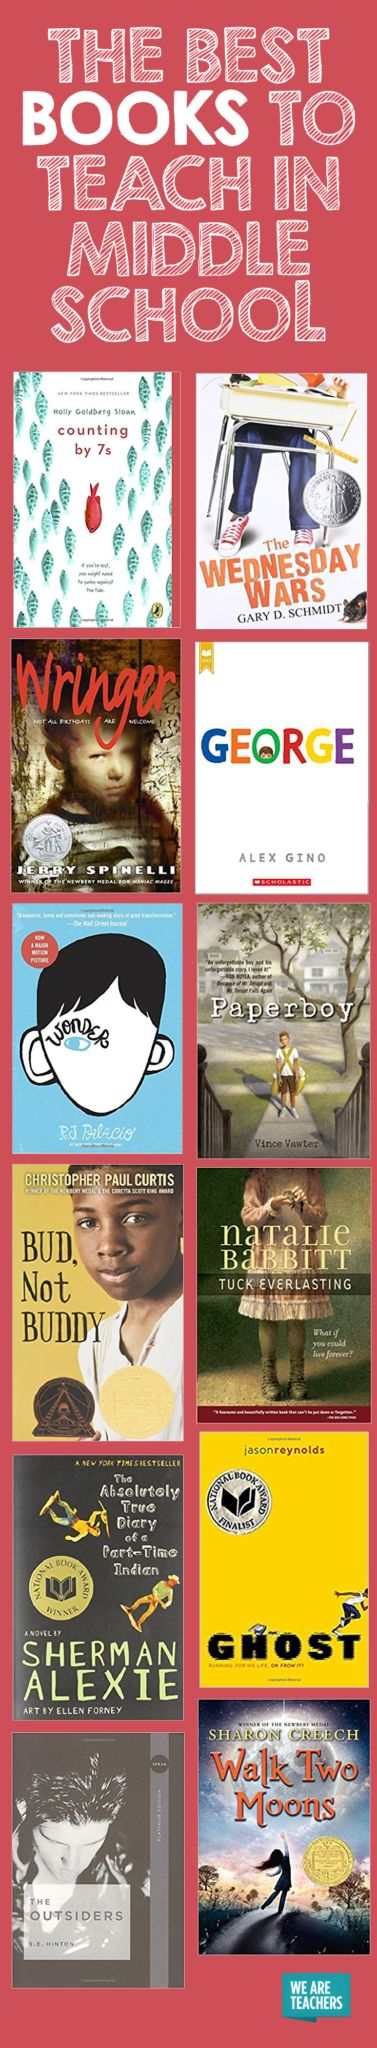 The books we read as middle schoolers change the course of our identity.